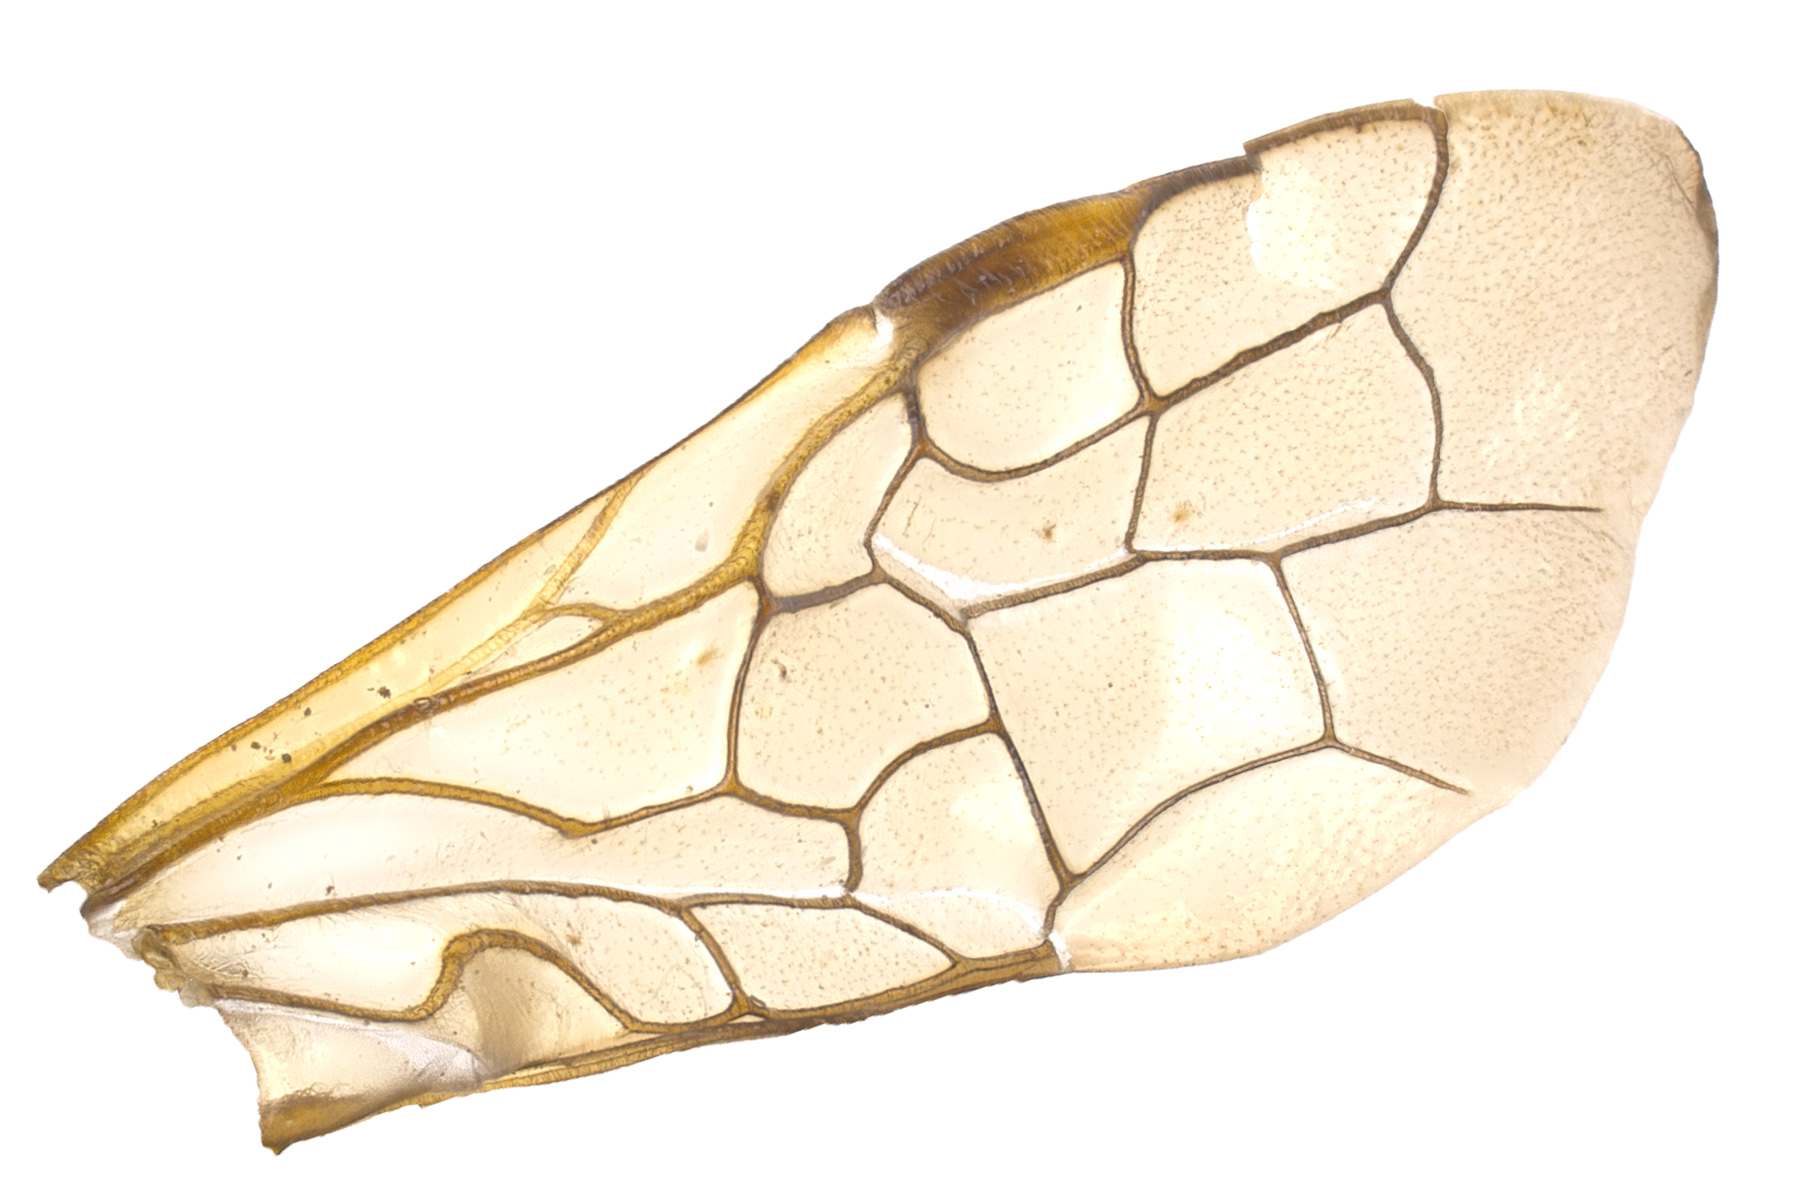 <em>Acantholyda bucephala</em> fore wing; photo by J. Orr, WSDA